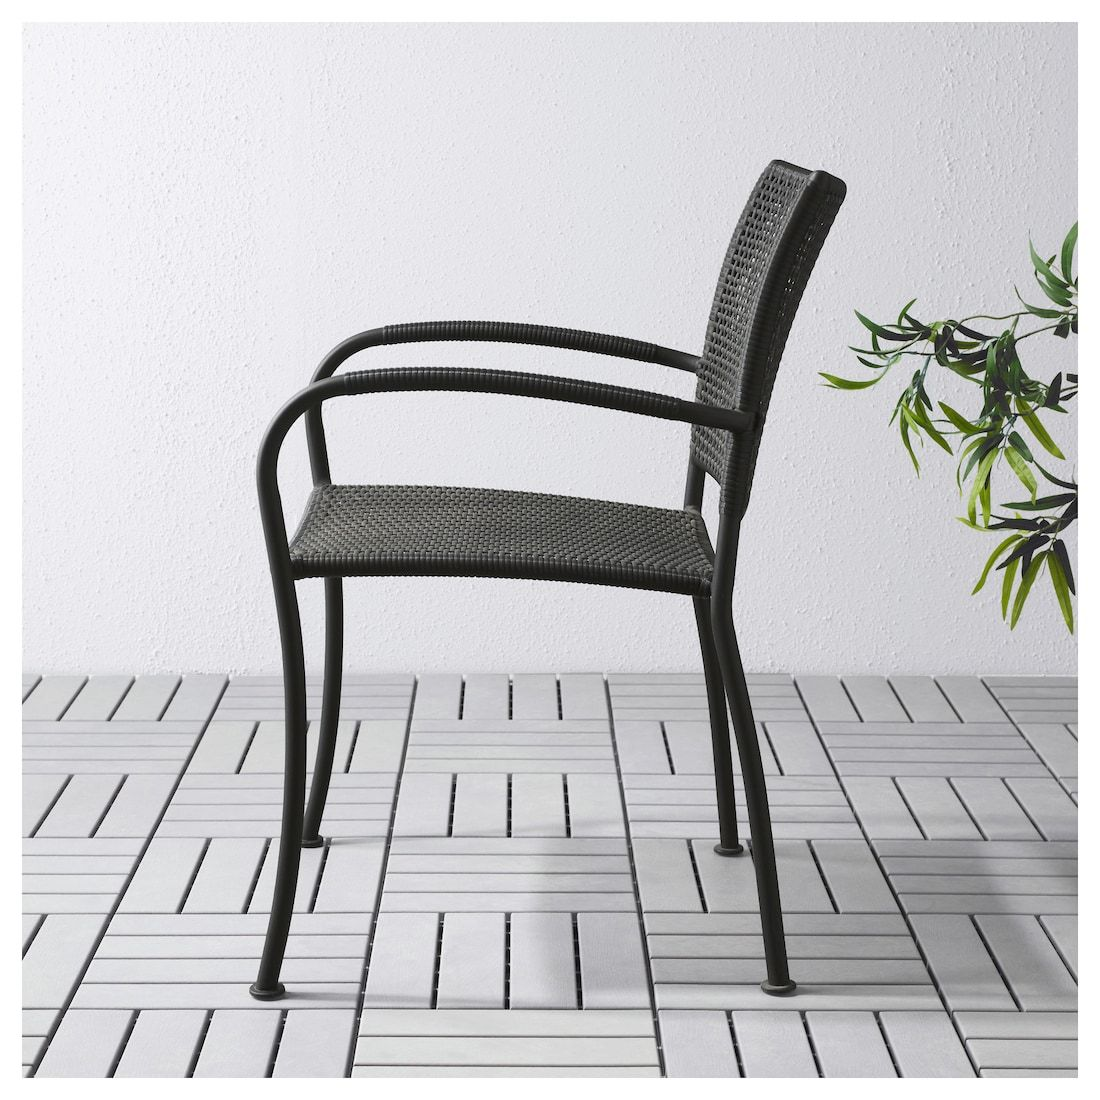 Ikea Gartenmöbel Läckö LÄckÖ Armchair Outdoor Gray In 2019 Decor Outdoor Chairs